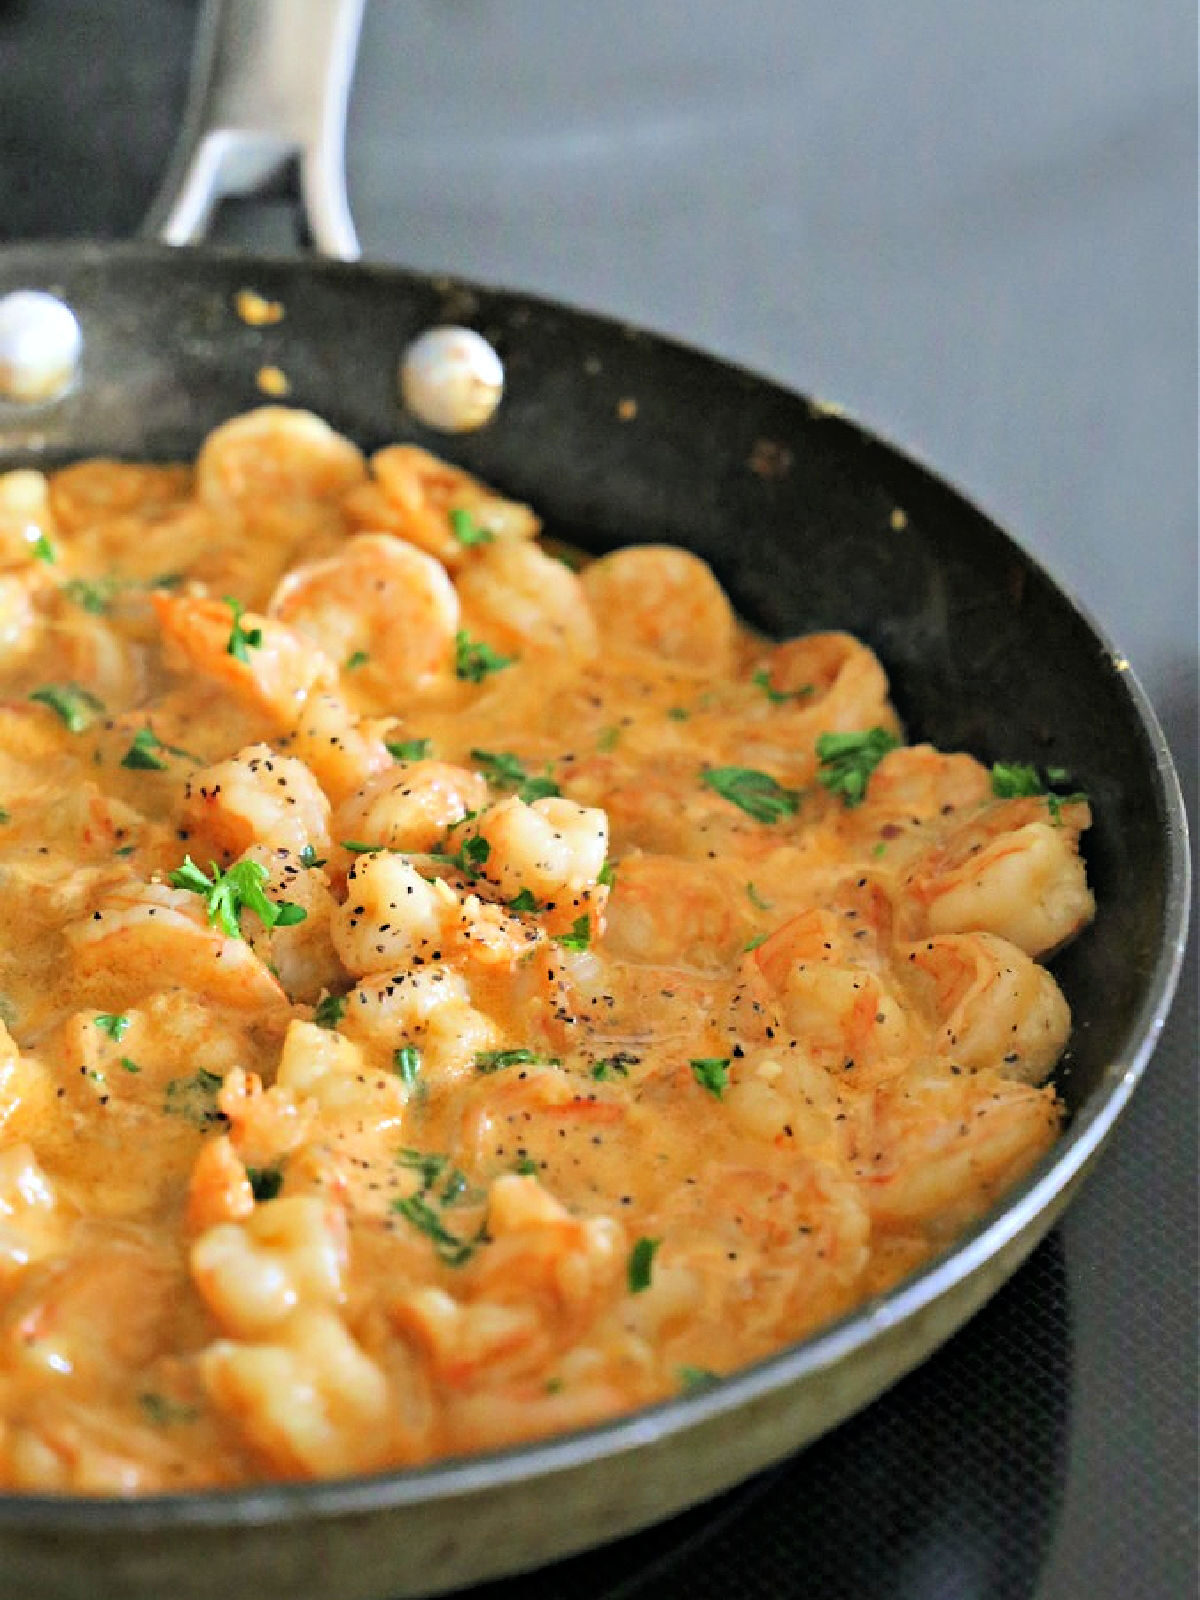 Non-stick skillet with shrimp scampi garnished with parsley.